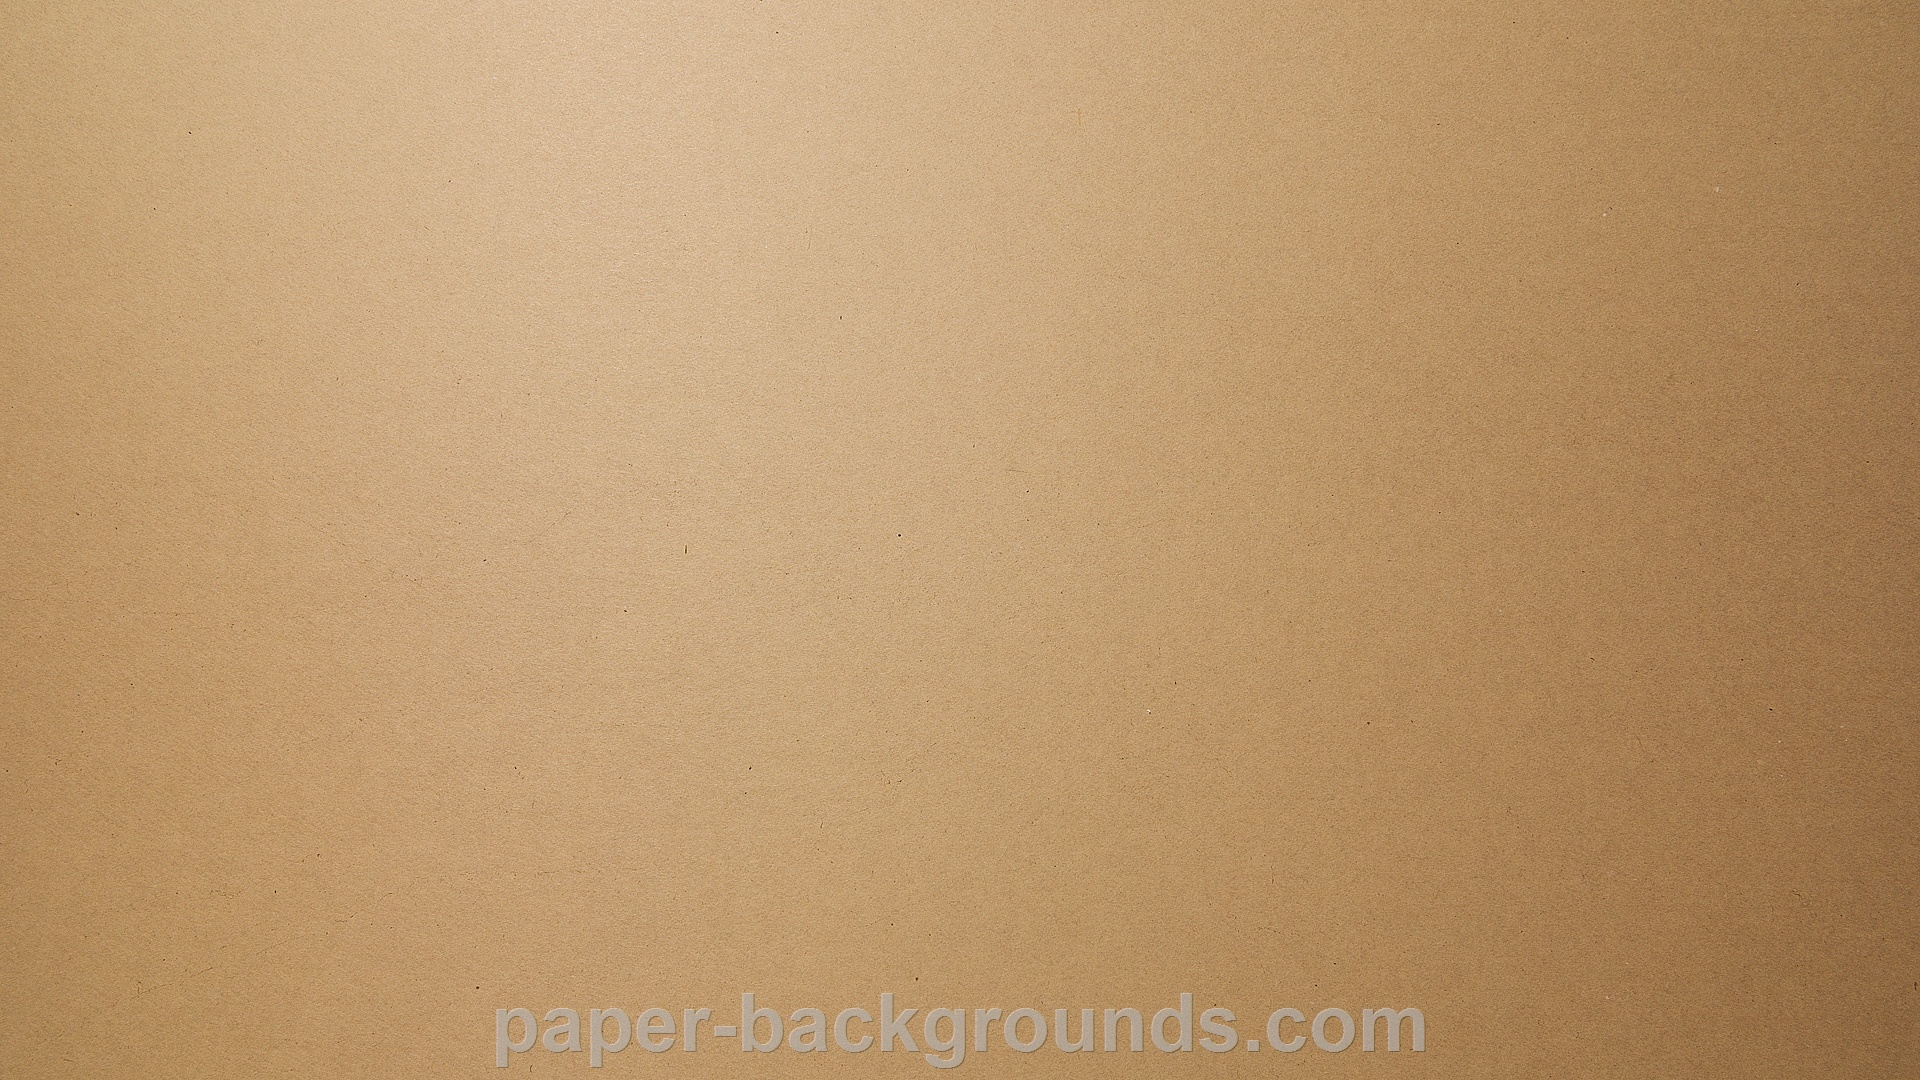 Paper Backgrounds brown cardboard paper texture hd 1920x1080